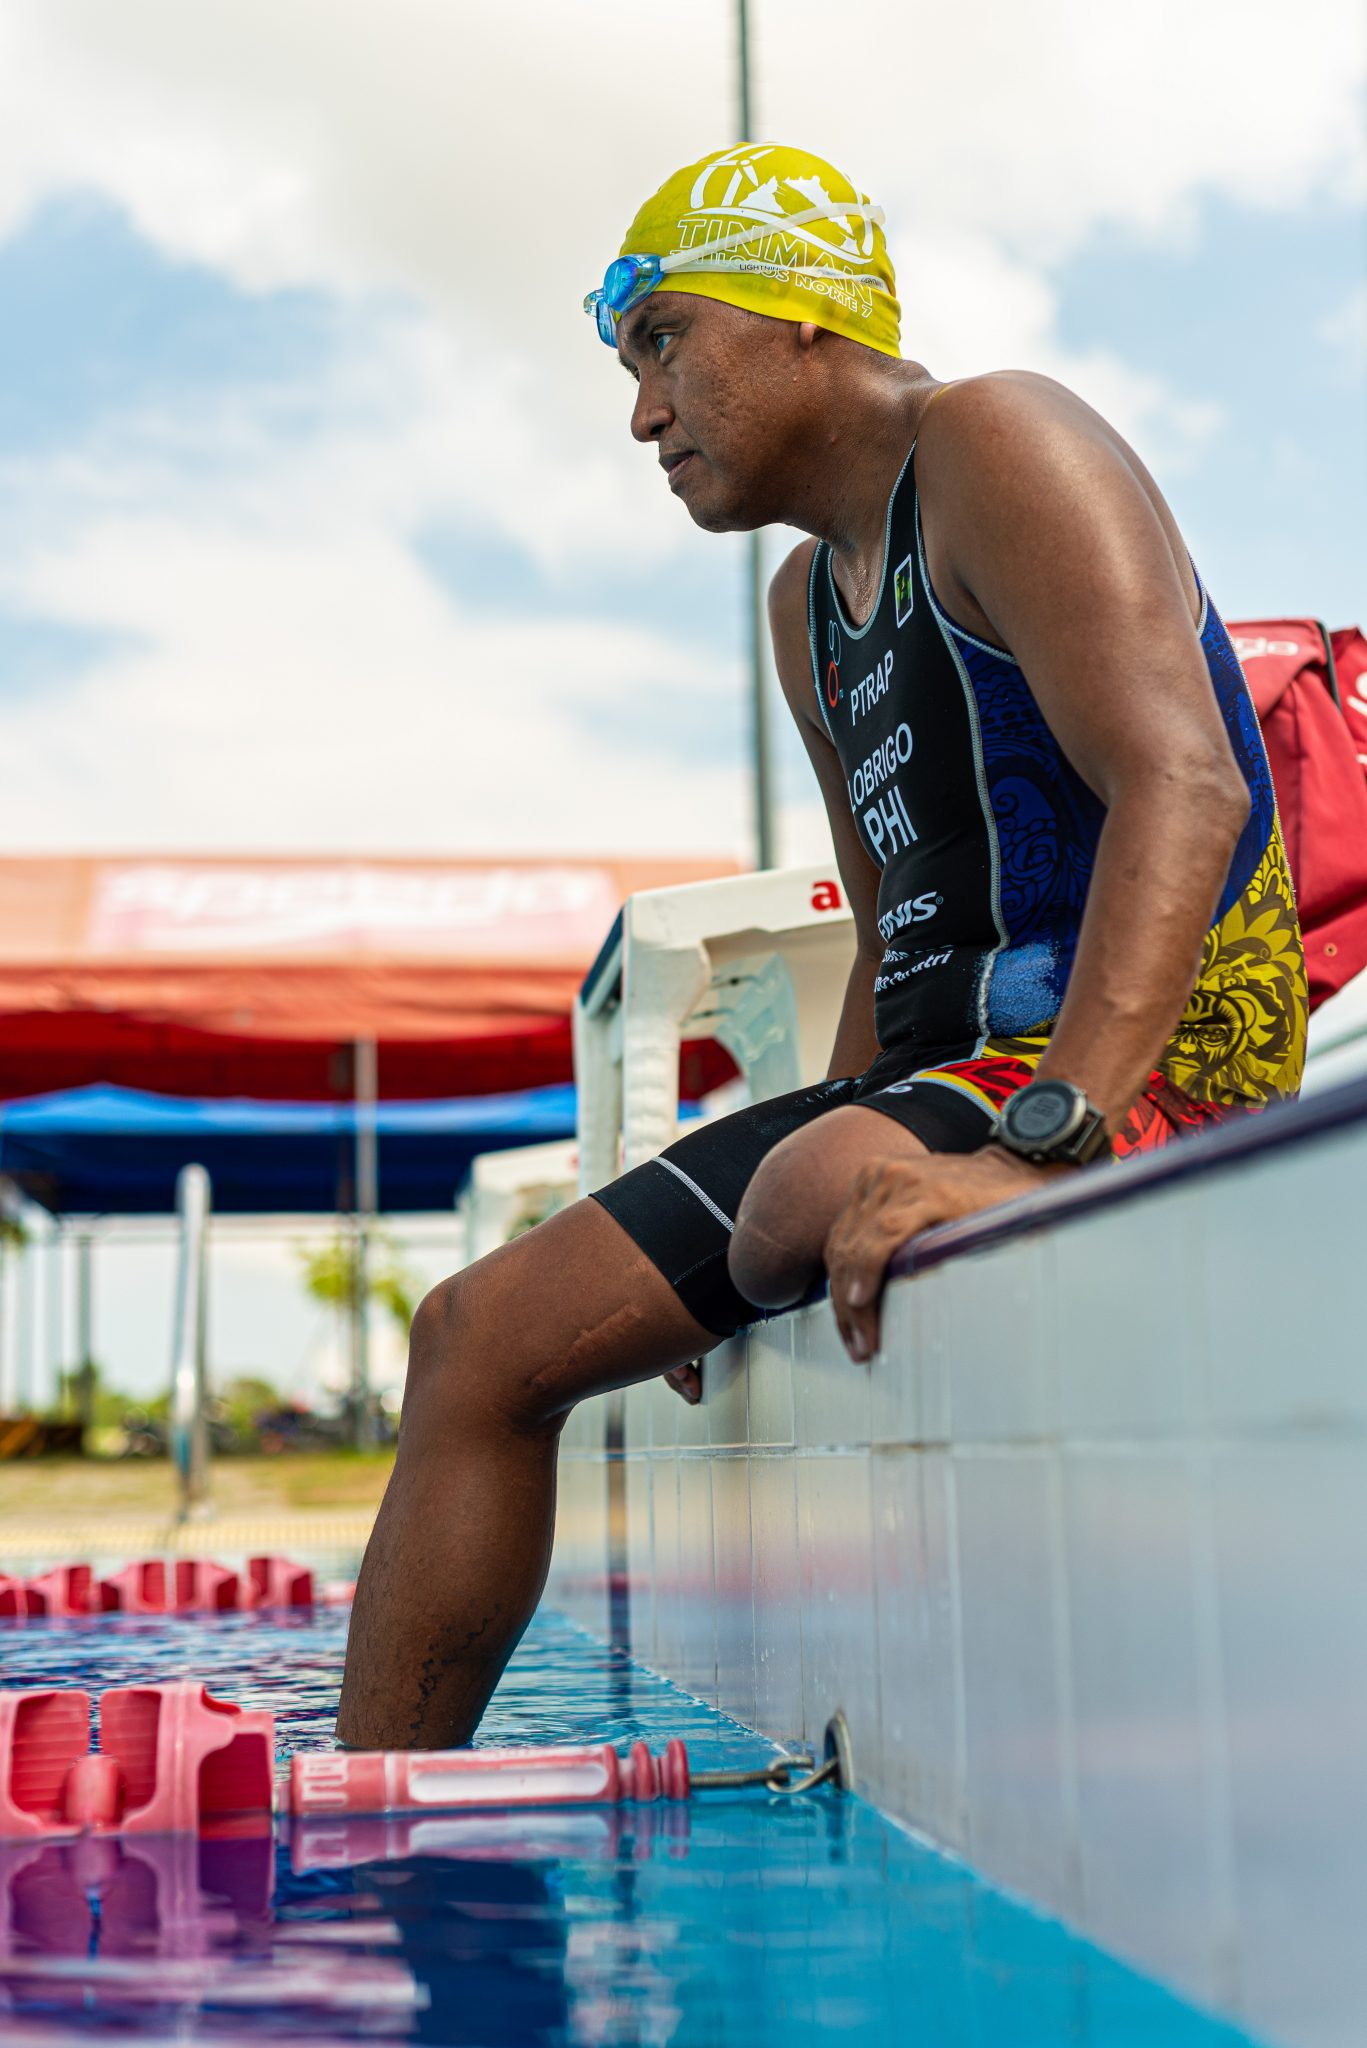 Manny Lobrigo's first foray into endurance sports was as a swimmer in the Mayon Tri Team